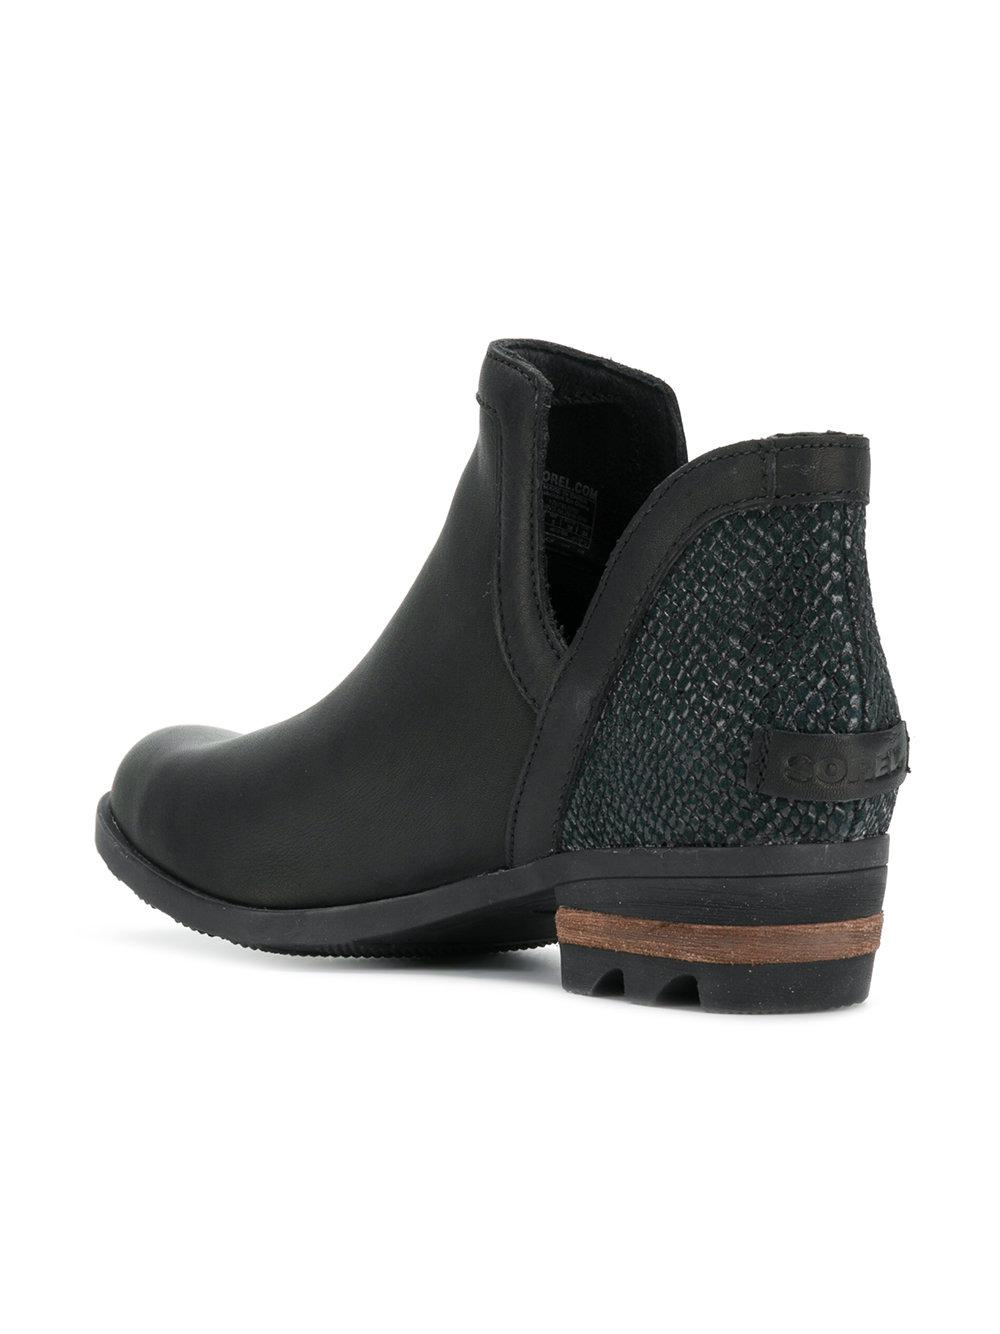 Sorel Leather Pull-on Boots in Black